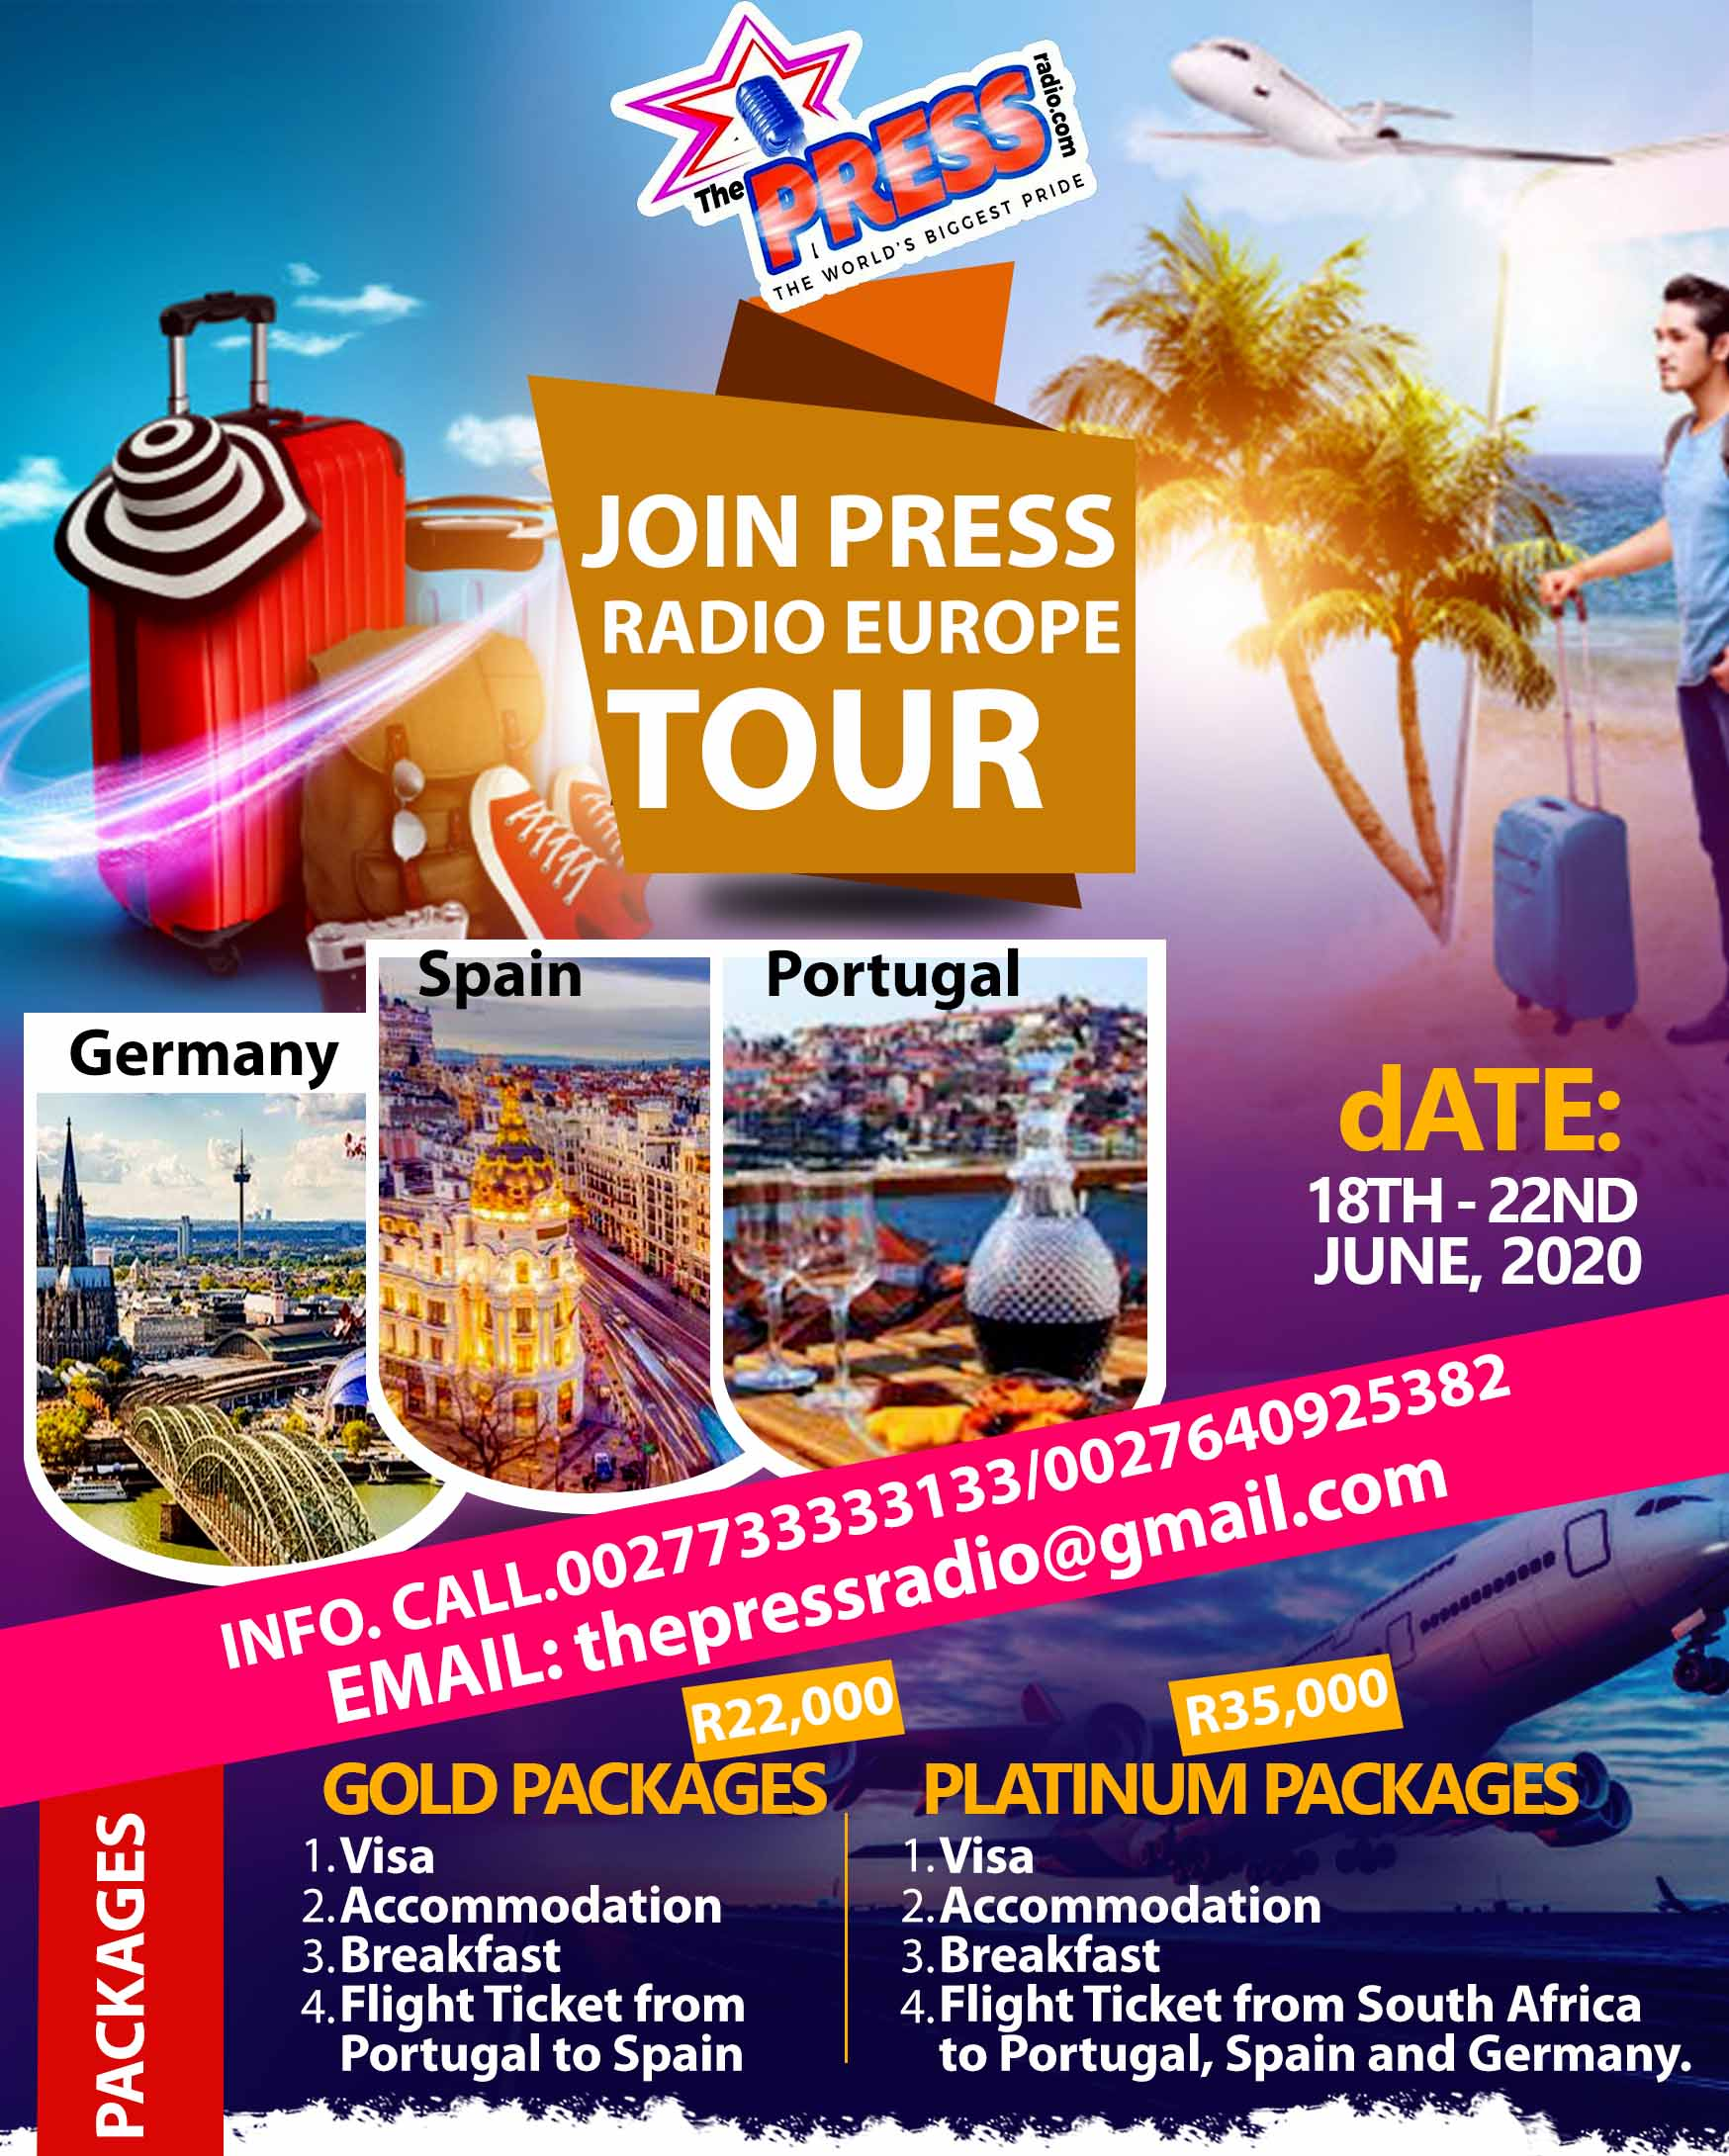 JOIN PRESS MLTI-MEDIA TO TOUR EUROPE